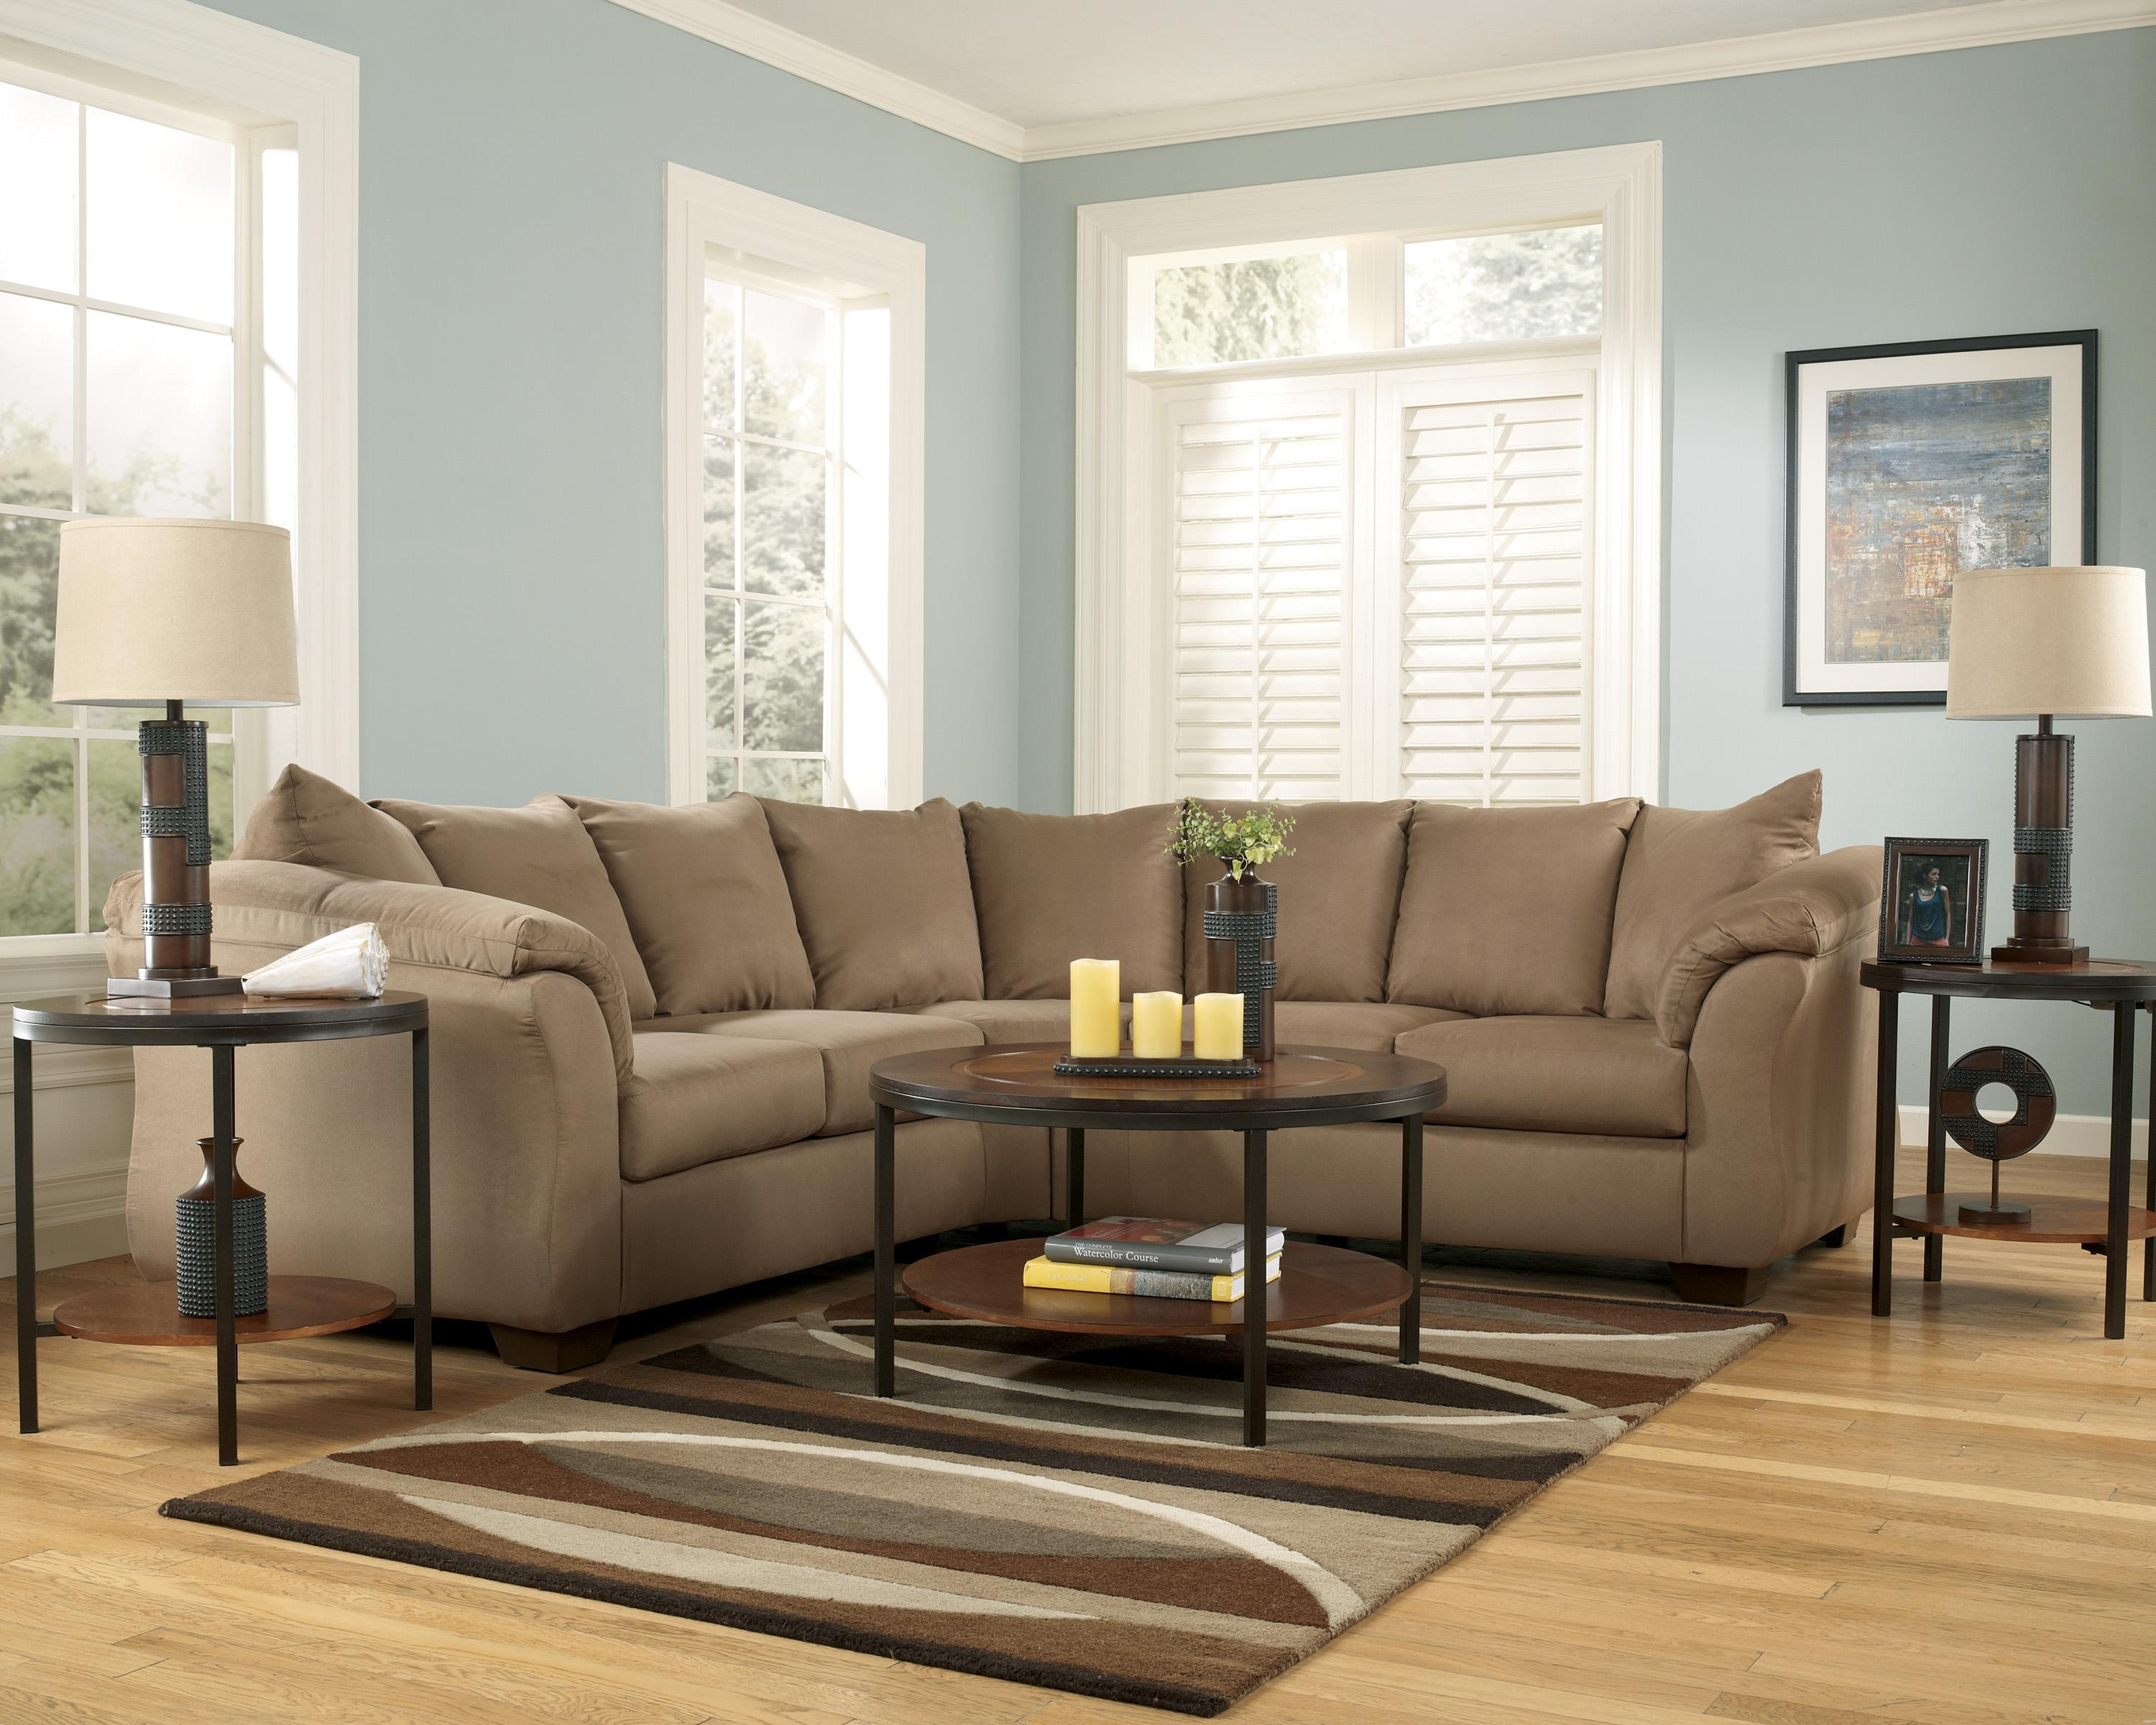 Featured Image of Ashley Furniture Grenada Sectional